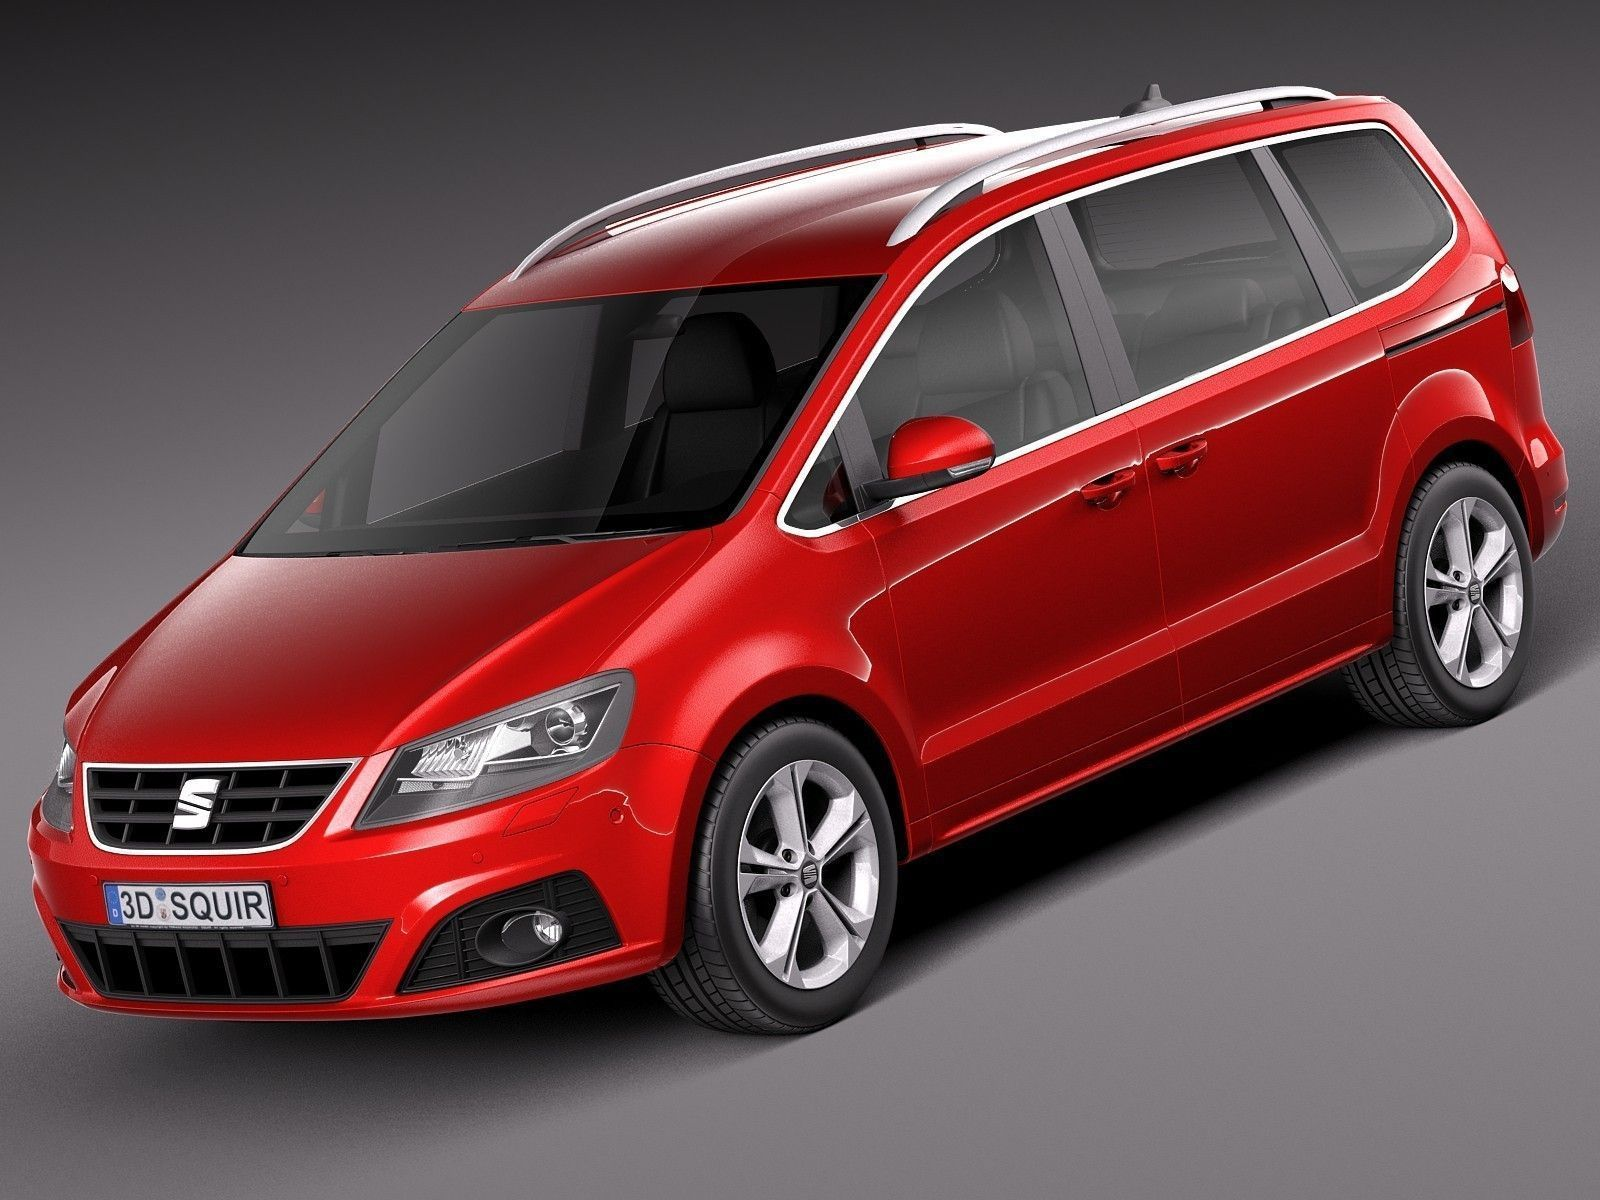 seat alhambra 2016 3d model max obj 3ds fbx c4d lwo lw lws. Black Bedroom Furniture Sets. Home Design Ideas